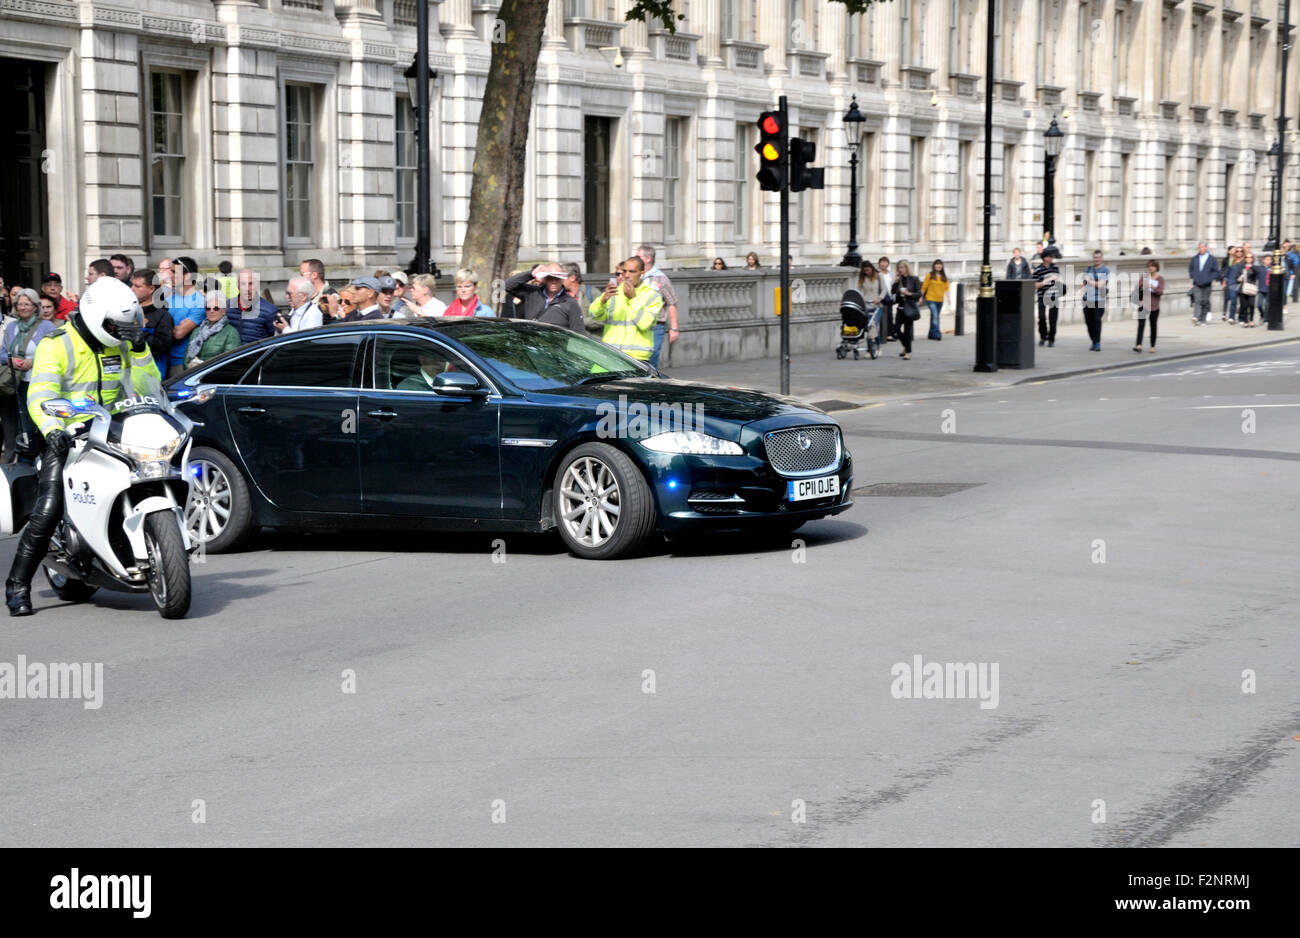 london england uk the prime minister 39 s car leaves downing street stock photo royalty free. Black Bedroom Furniture Sets. Home Design Ideas